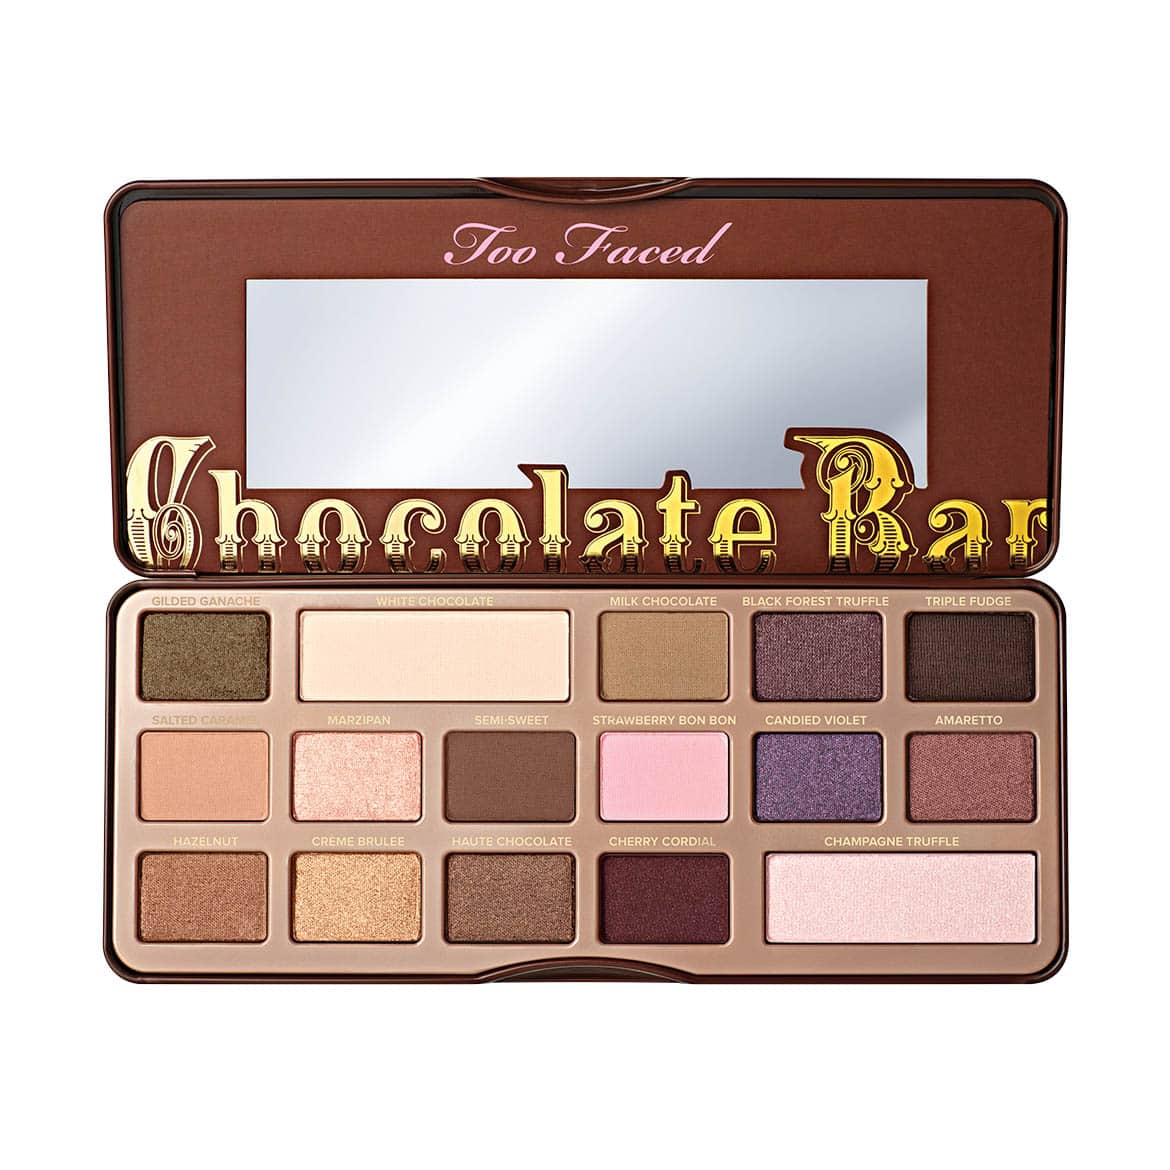 Too Faced BDAY Set ($109 Value) for $65 + Free Shipping